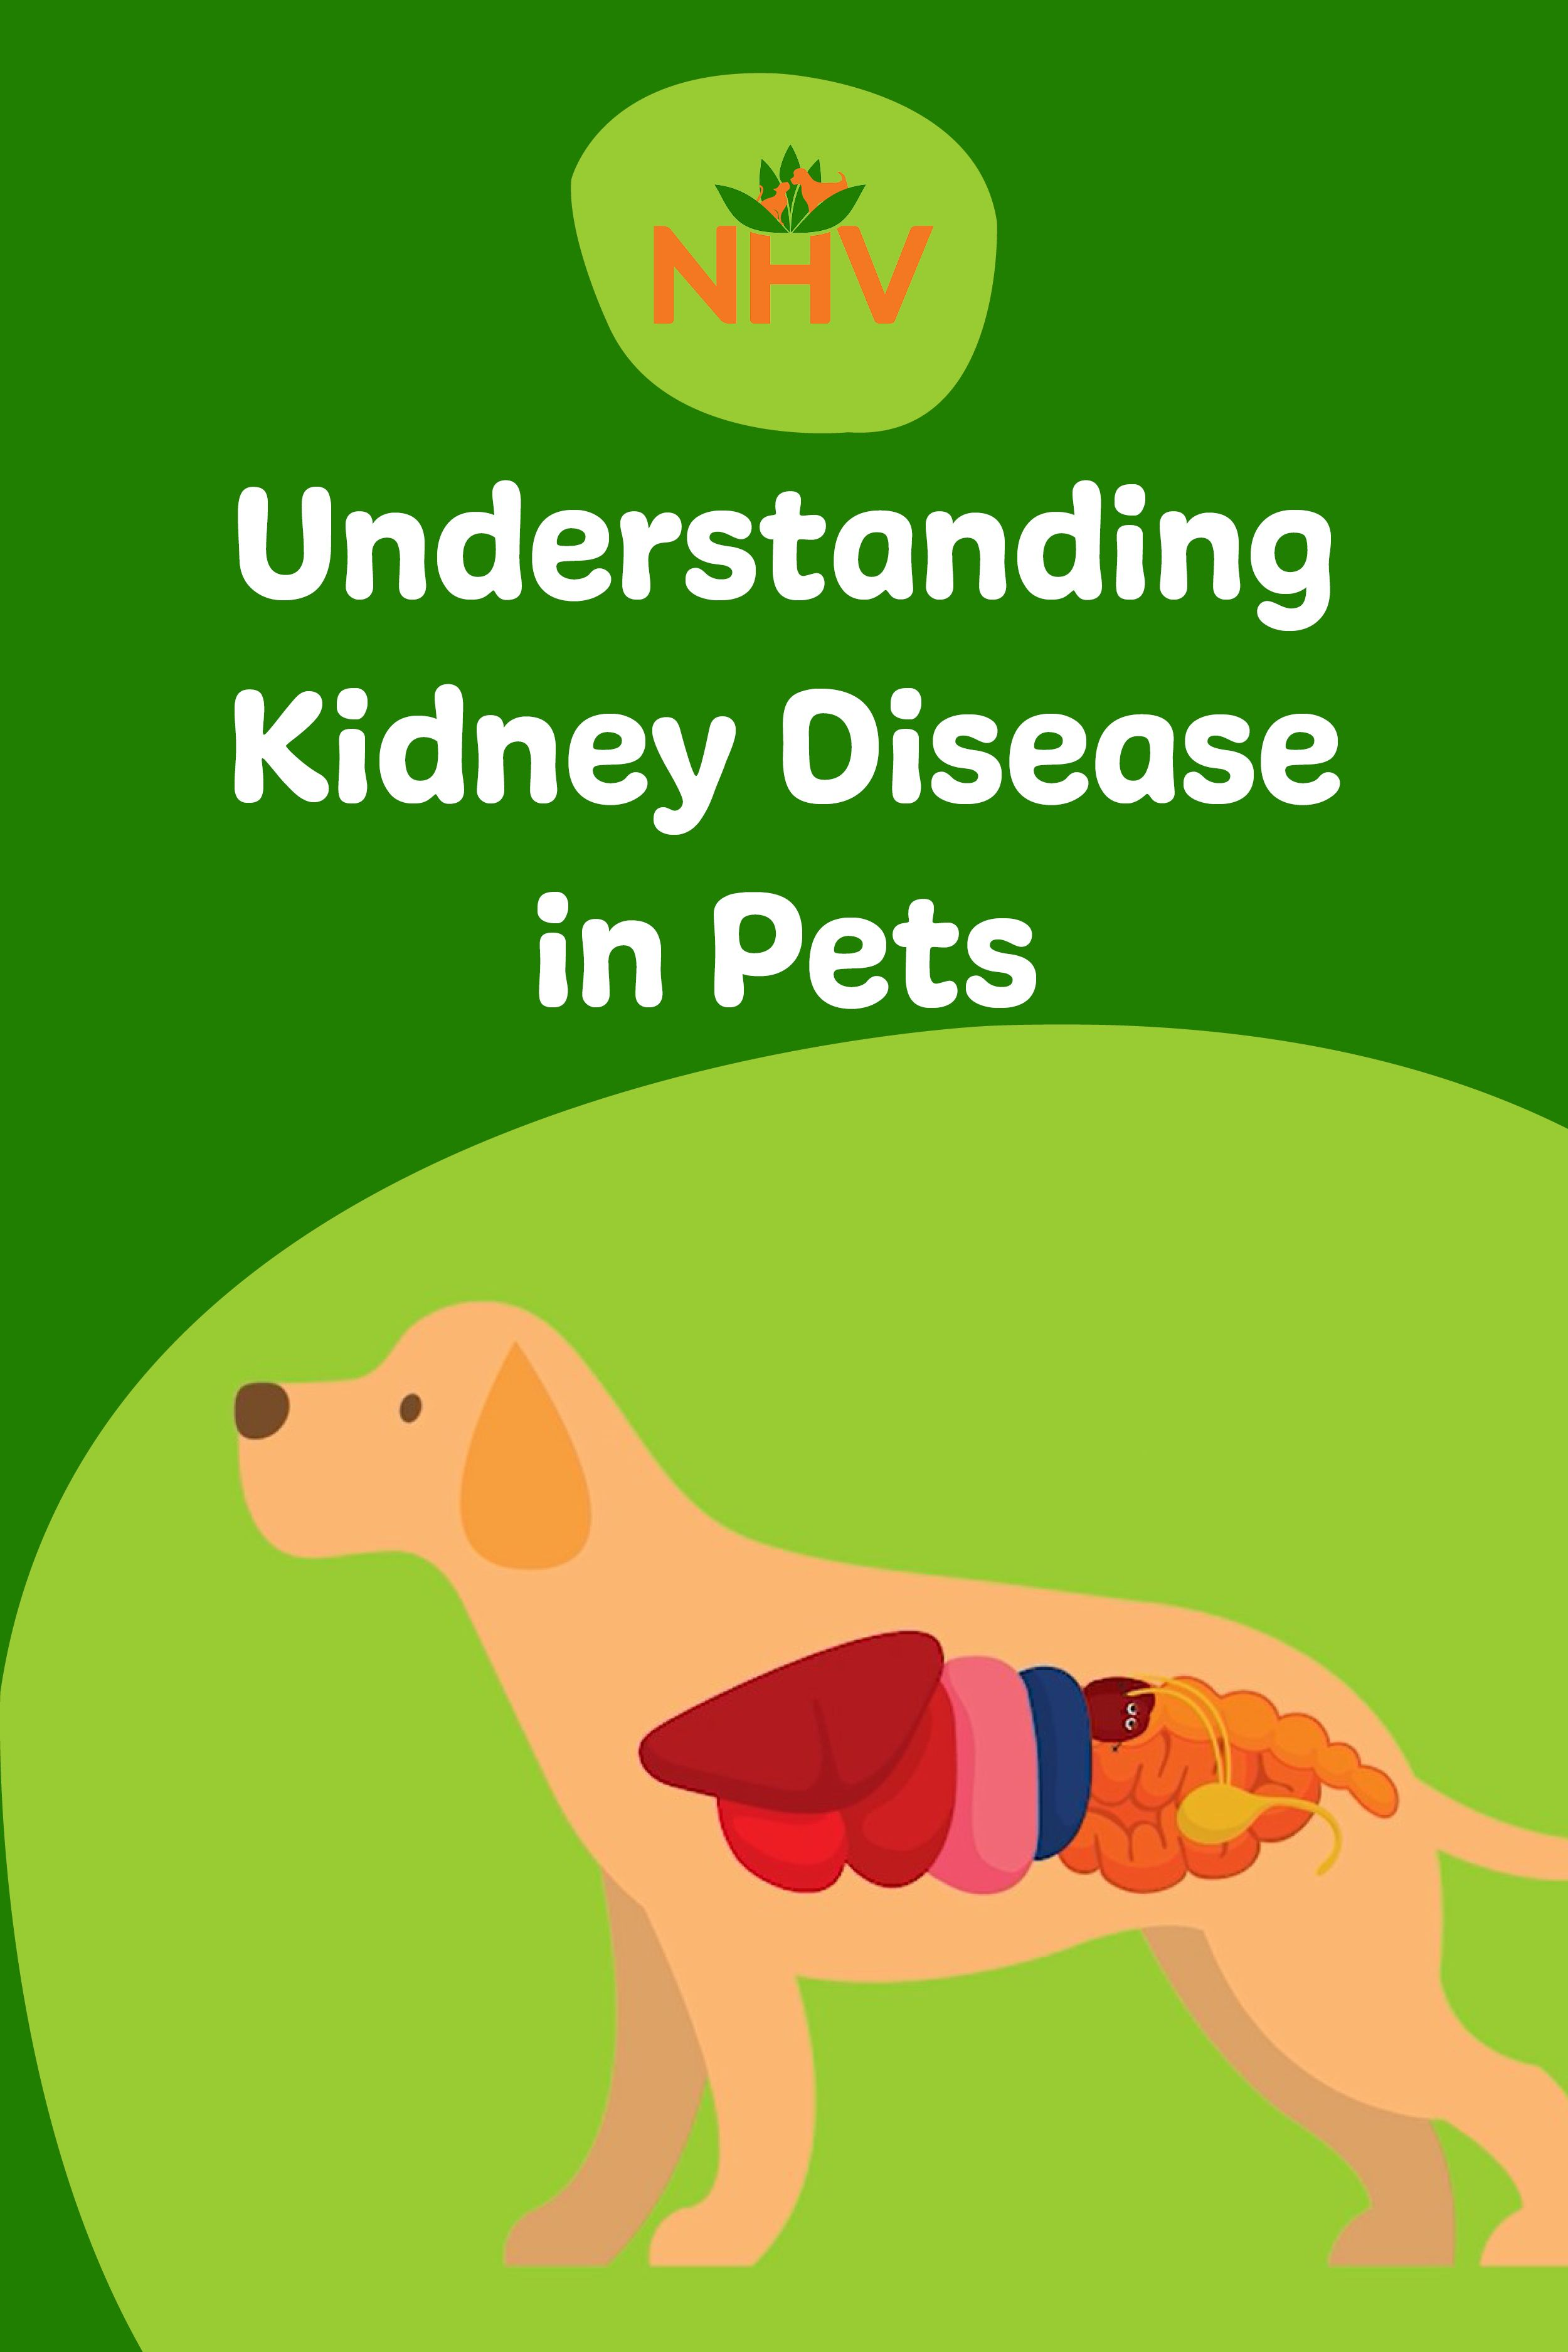 Does your pet have Kidney Disease? This informative video